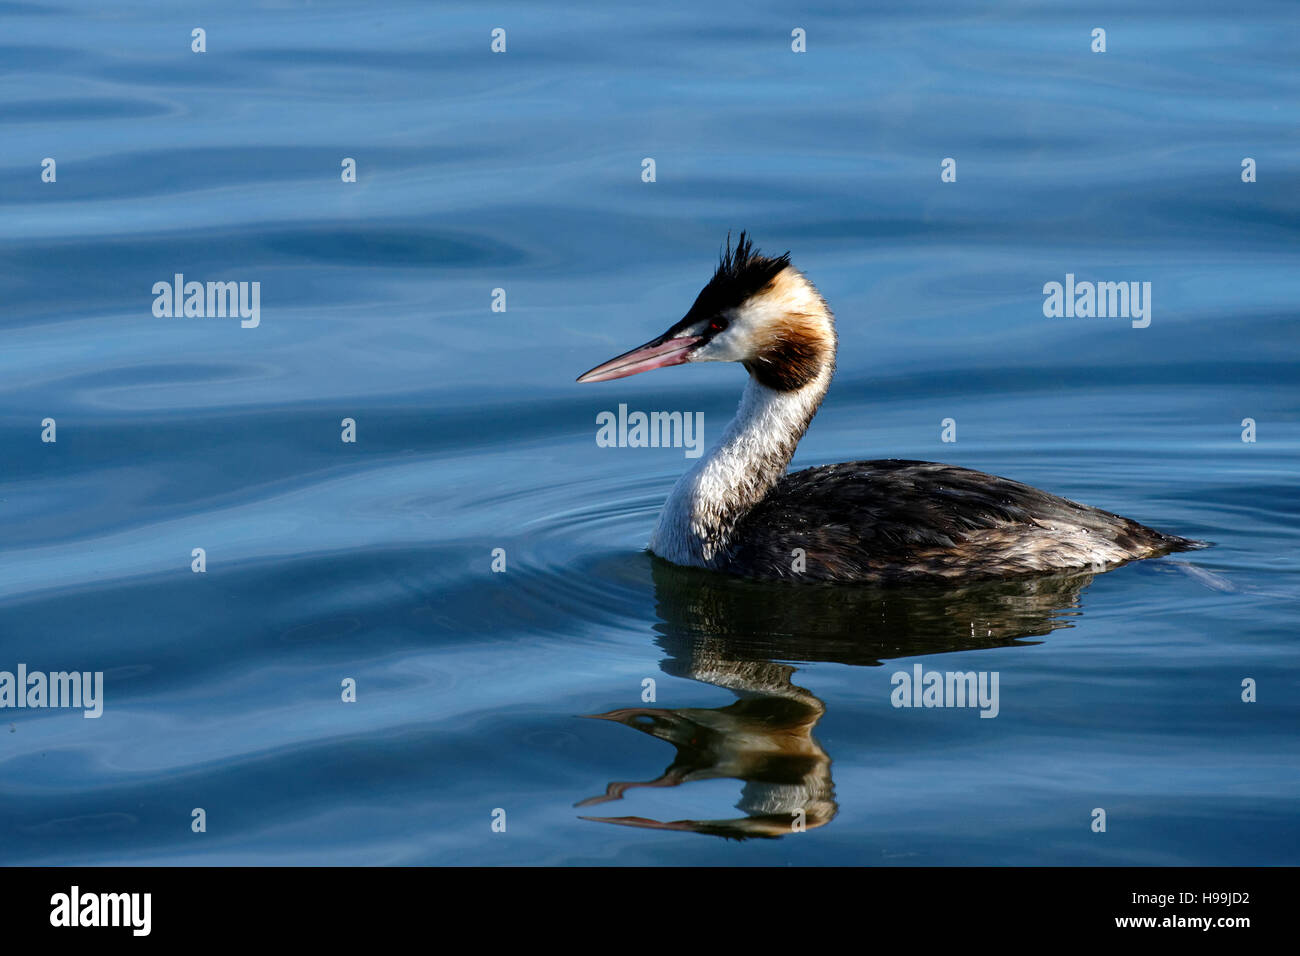 Great Crested Grebes (Podiceps cristatus) in water - Stock Image